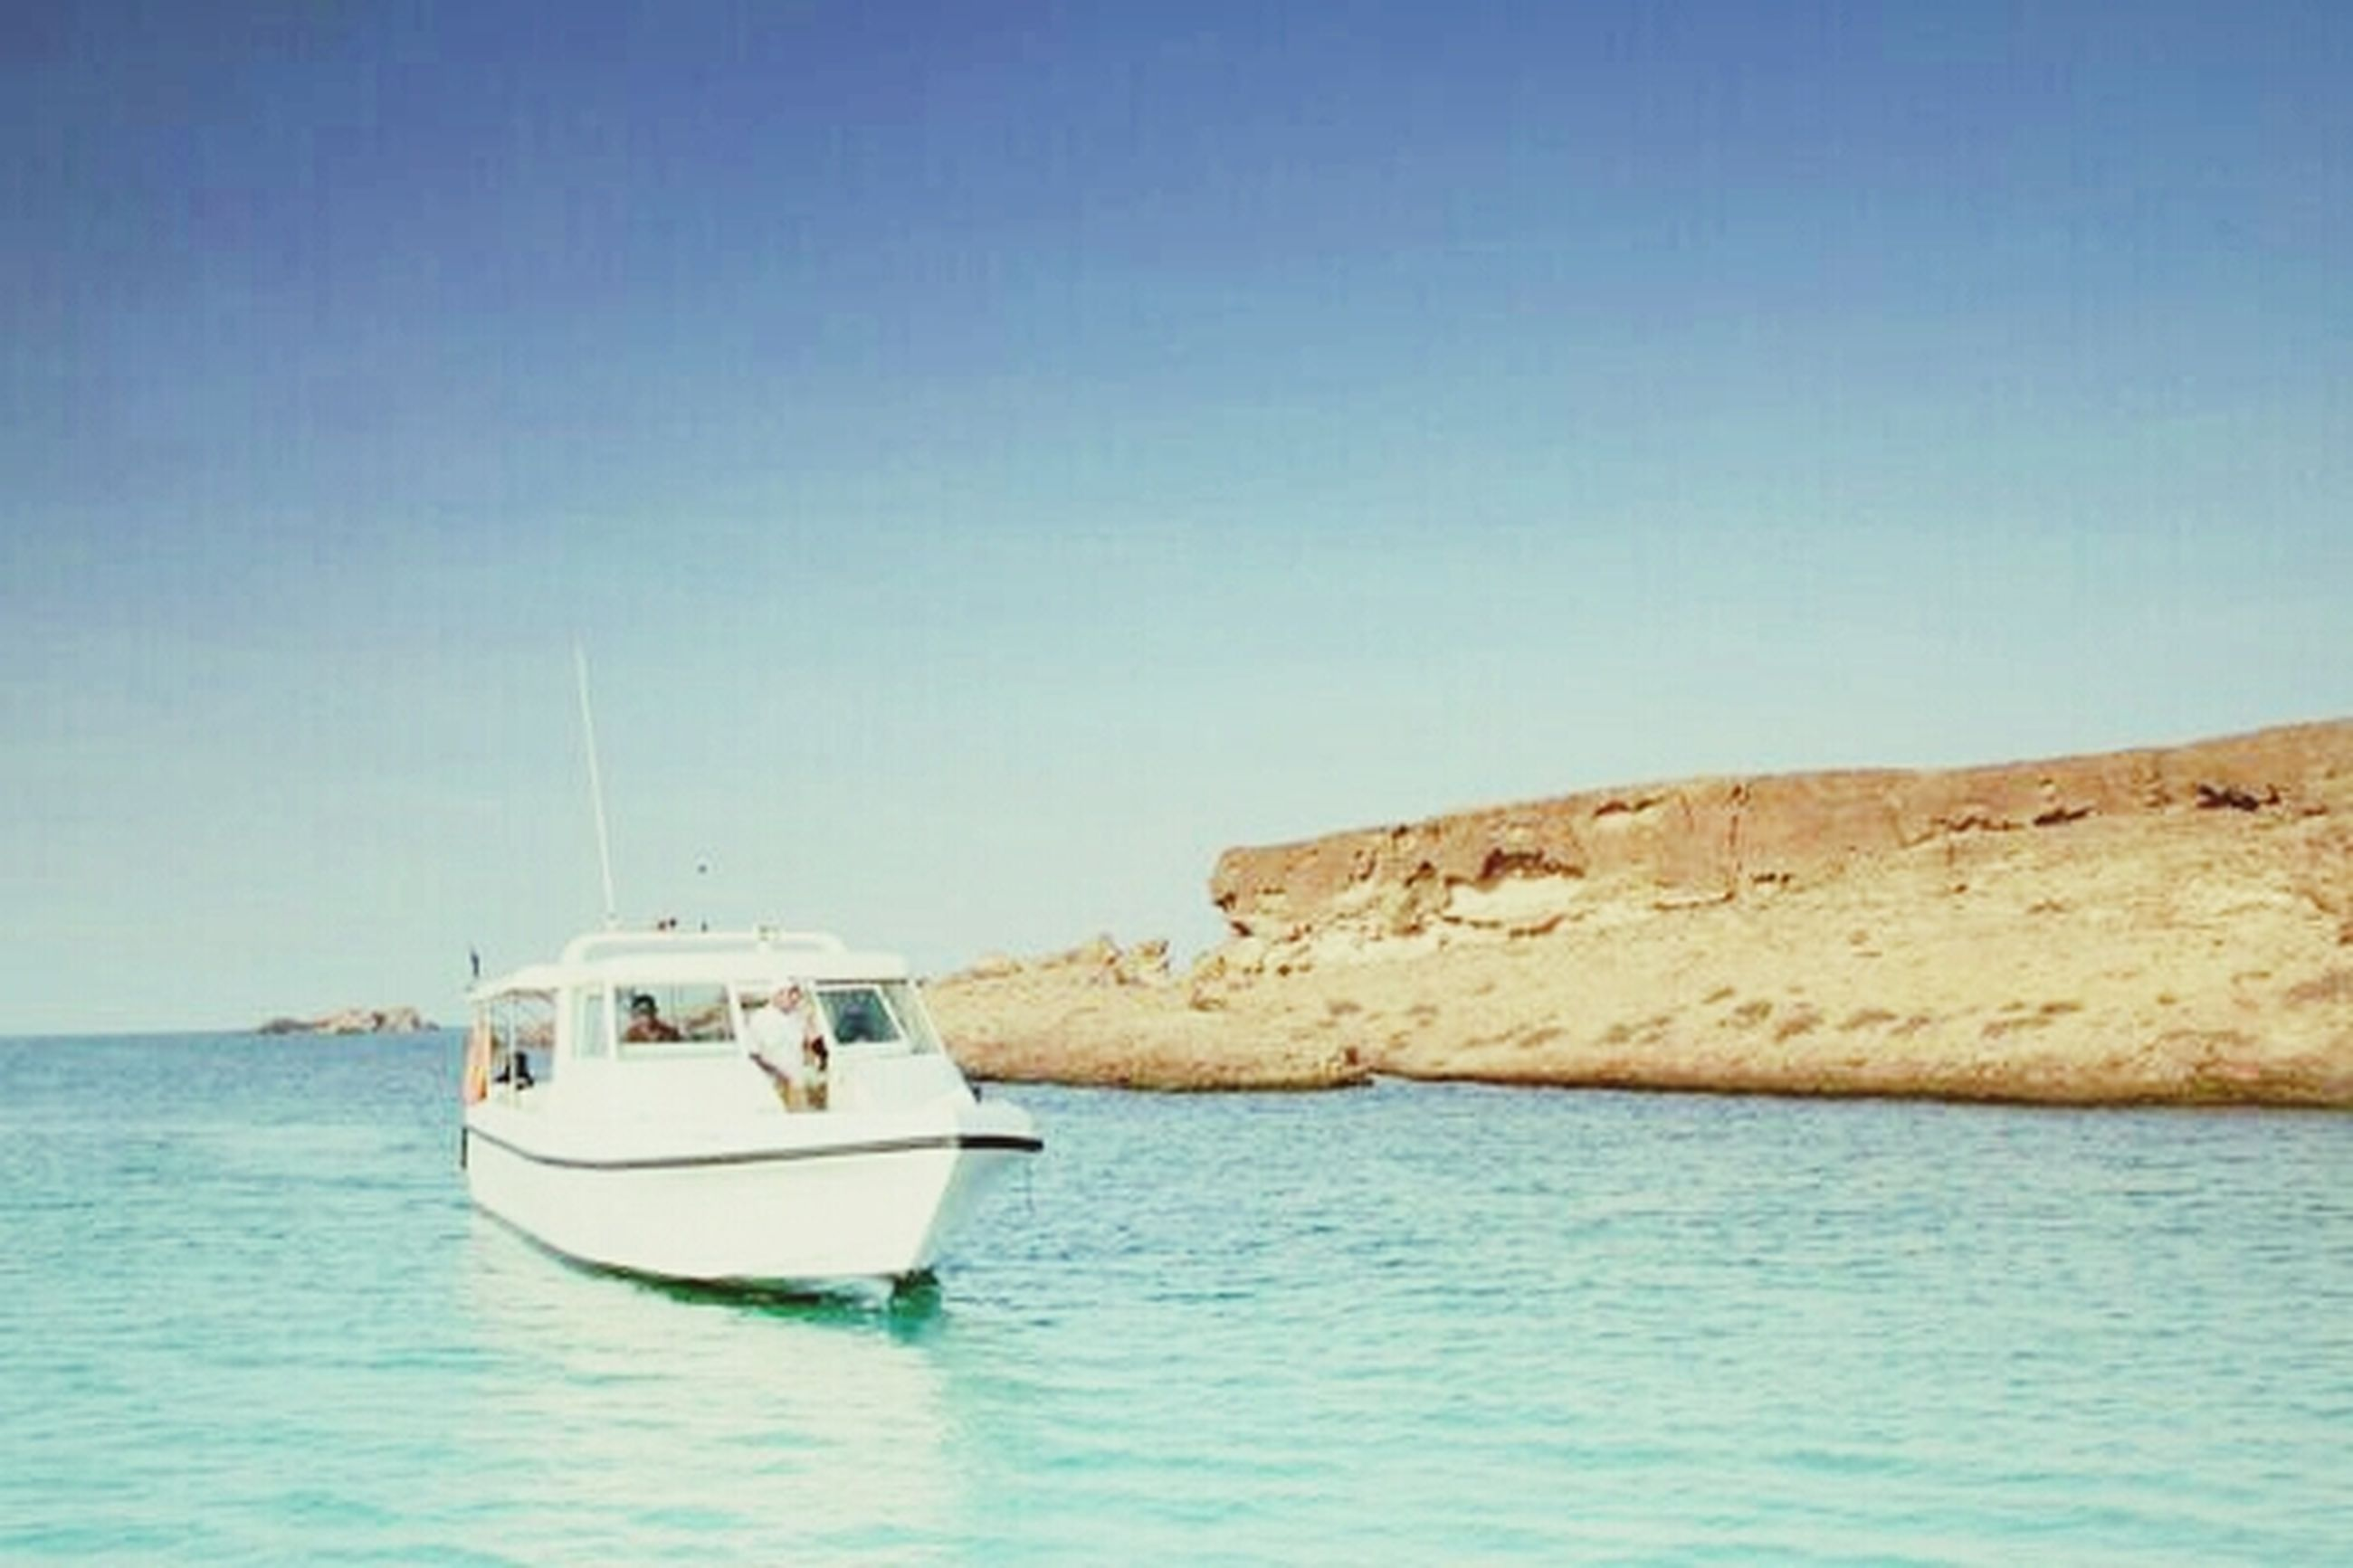 nautical vessel, water, sea, transportation, boat, mode of transport, clear sky, waterfront, horizon over water, copy space, blue, tranquil scene, sailboat, tranquility, moored, nature, scenics, sailing, beauty in nature, rippled